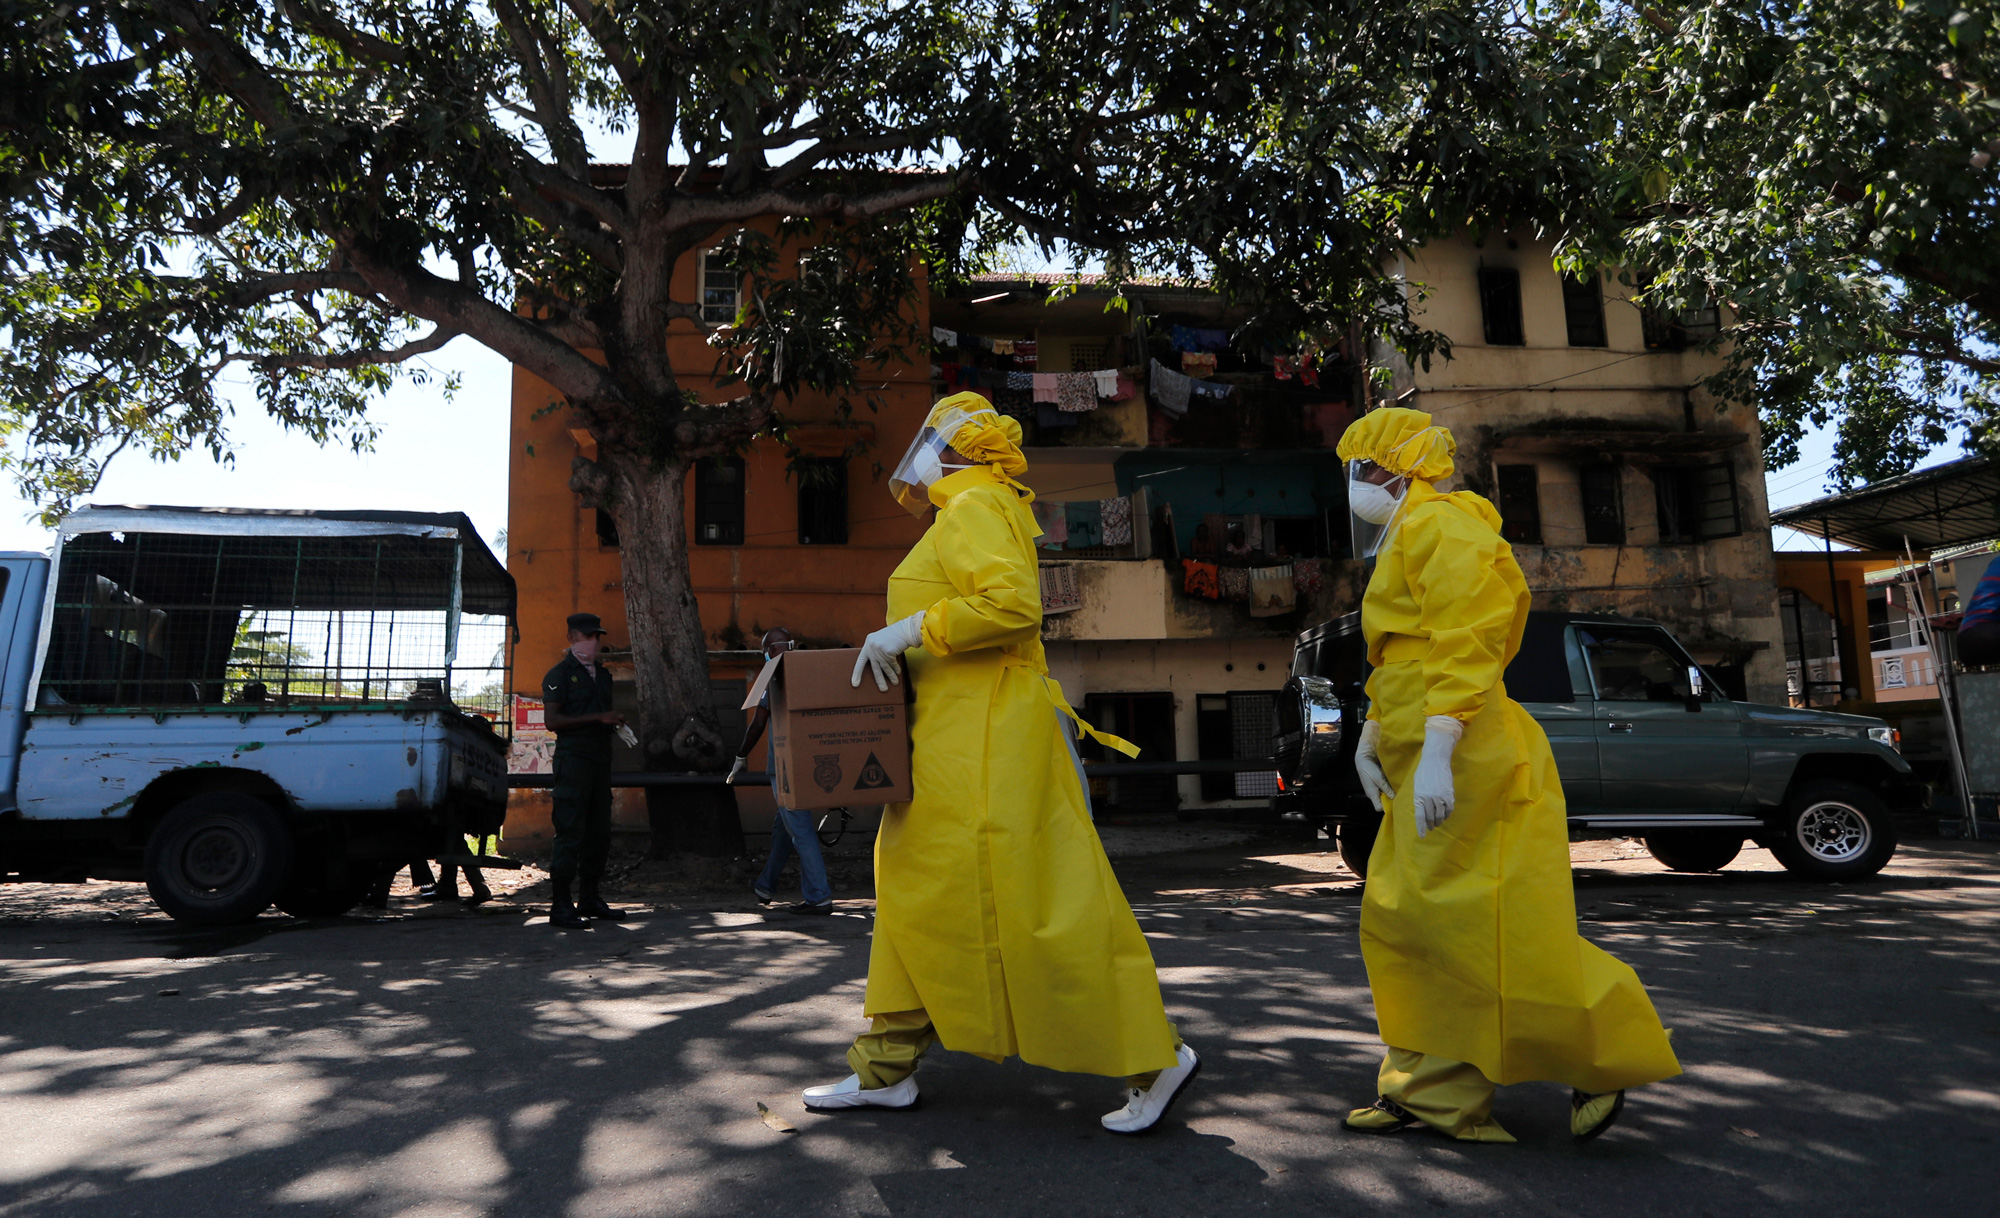 Medical workers garbed in protective gear walk through a neighborhood in Columbo, Sri Lanka.